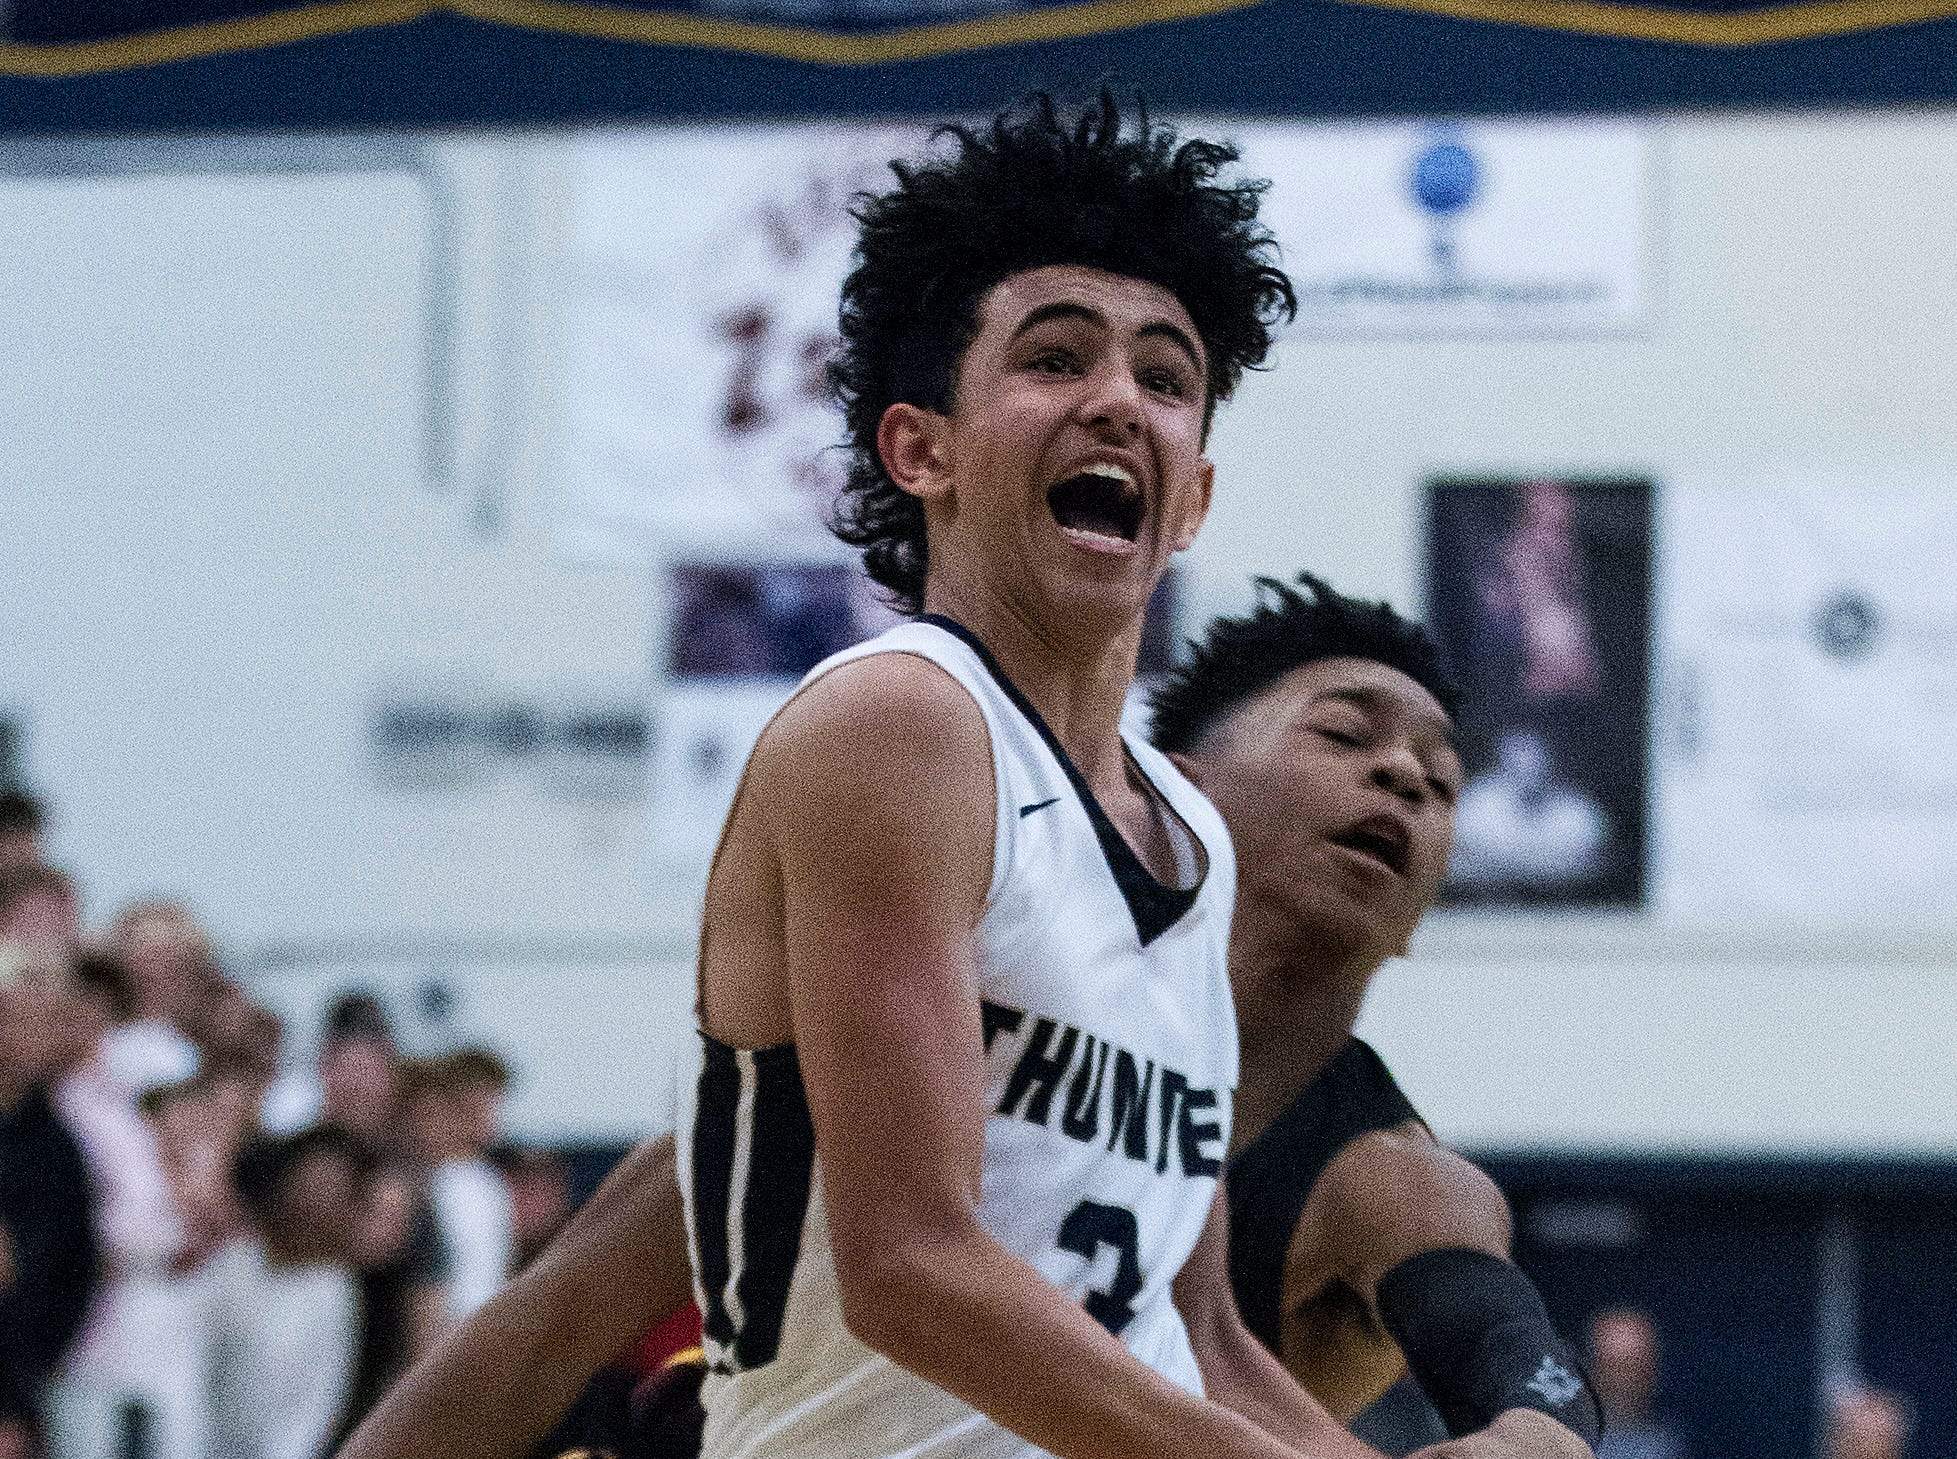 Desert Vista's Marcus Wady (3) get fouled by Mountain Pointe's Jason Kimbrough (0) during in the first half of their game at Desert Vista High School in Phoenix, Friday, Jan.11, 2019.